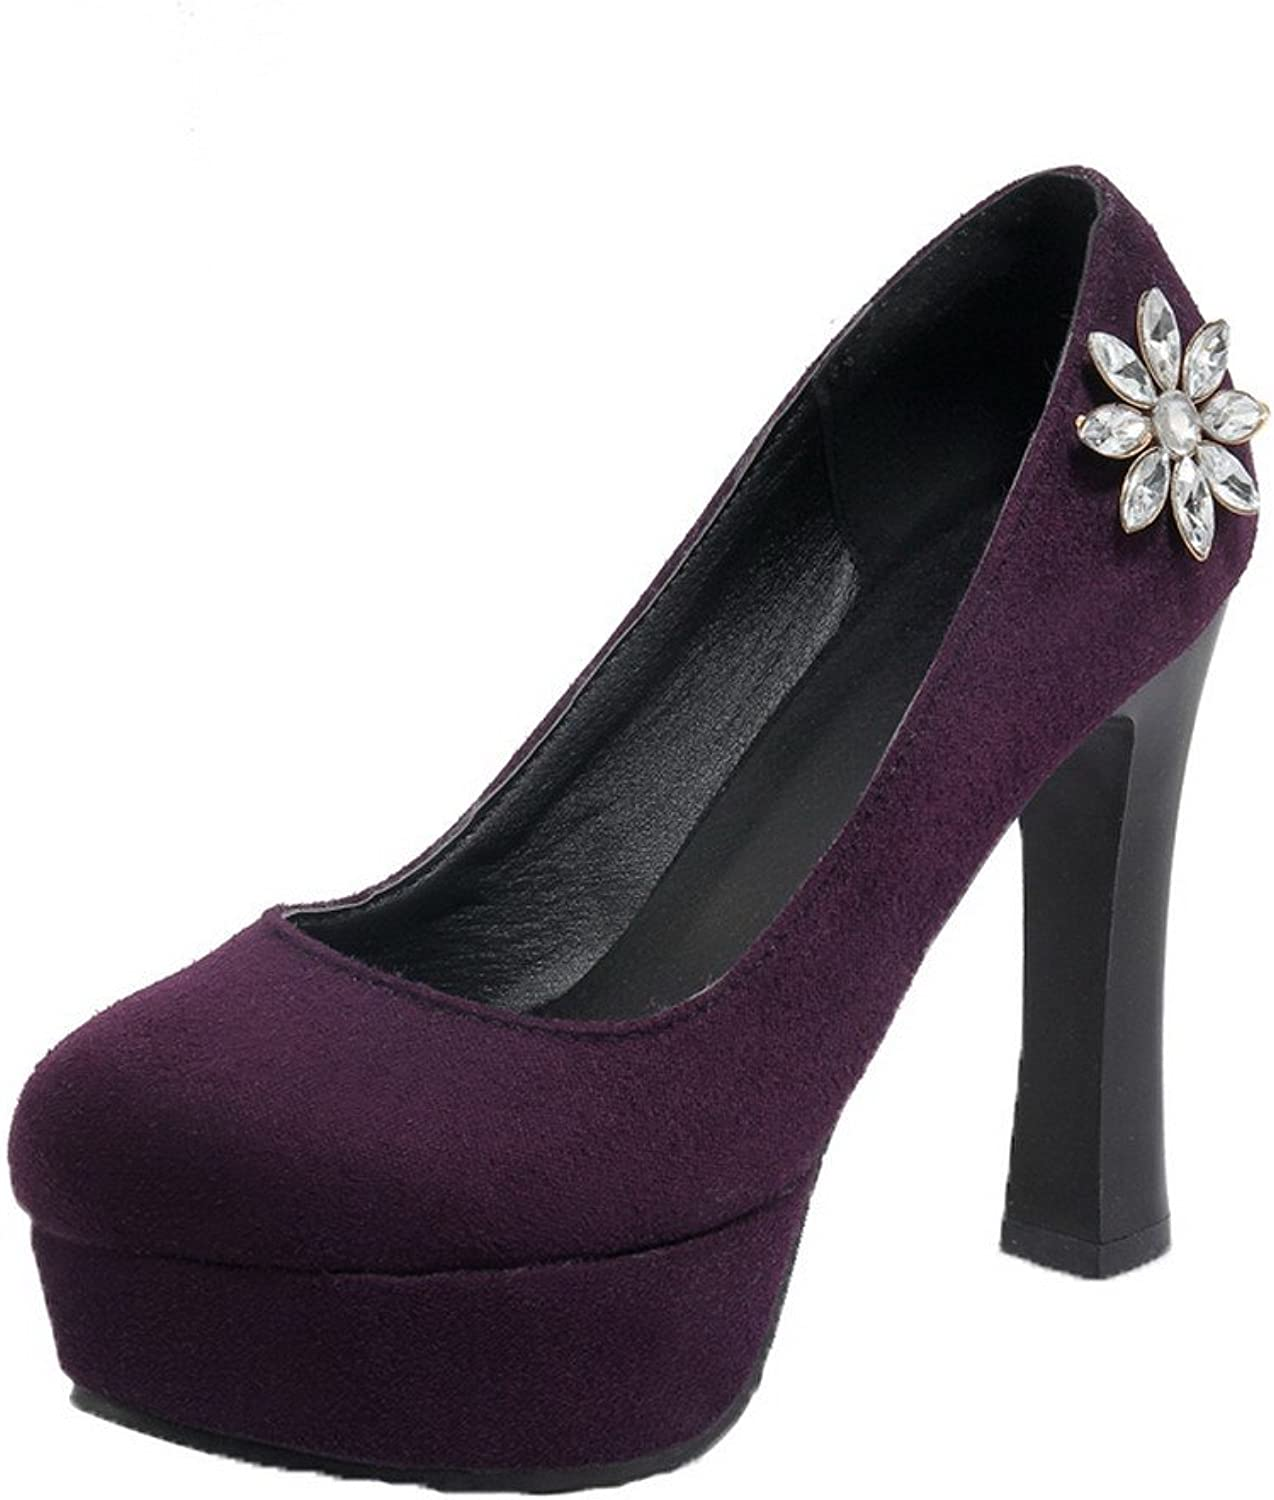 AmoonyFashion Women's High-Heels Frosted Solid Round Closed Toe Pumps-shoes